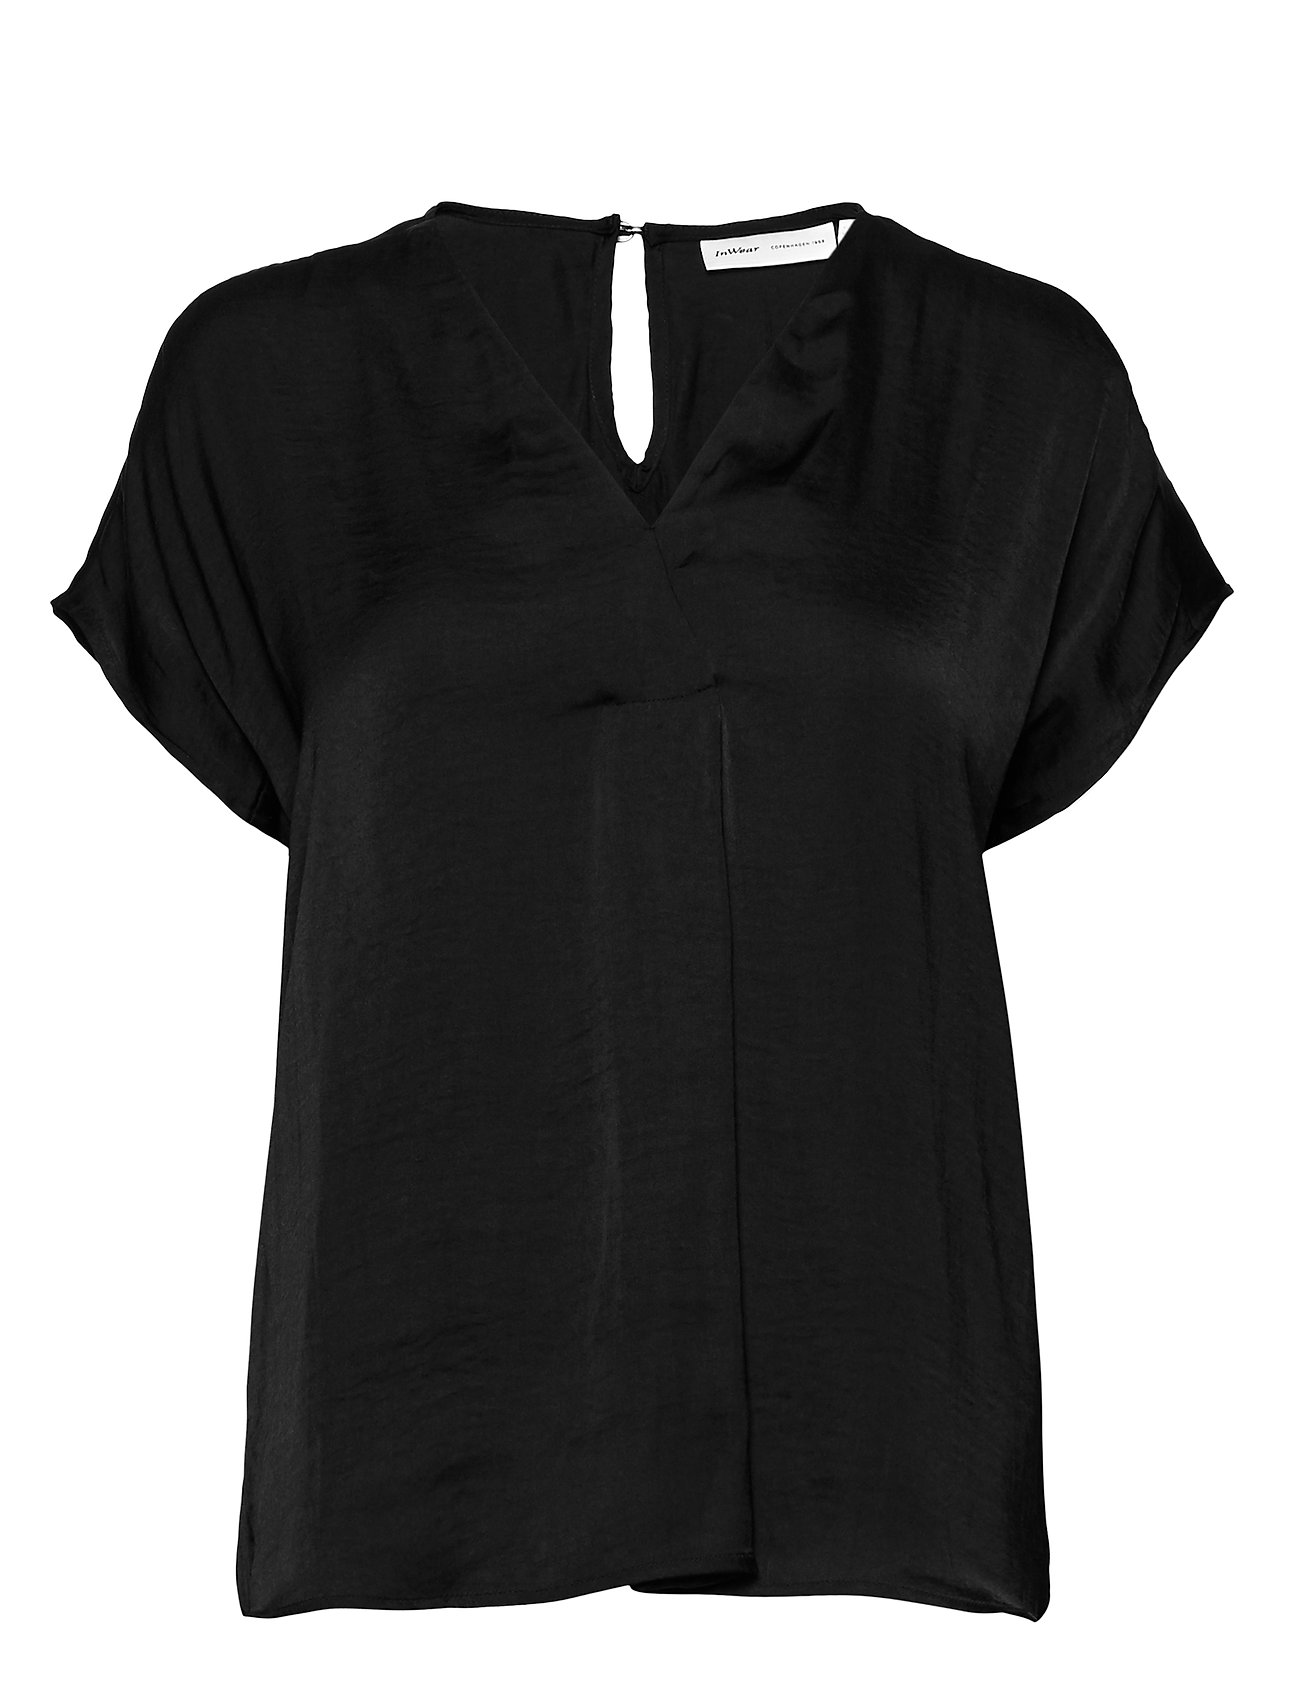 InWear RindaIW Top - BLACK